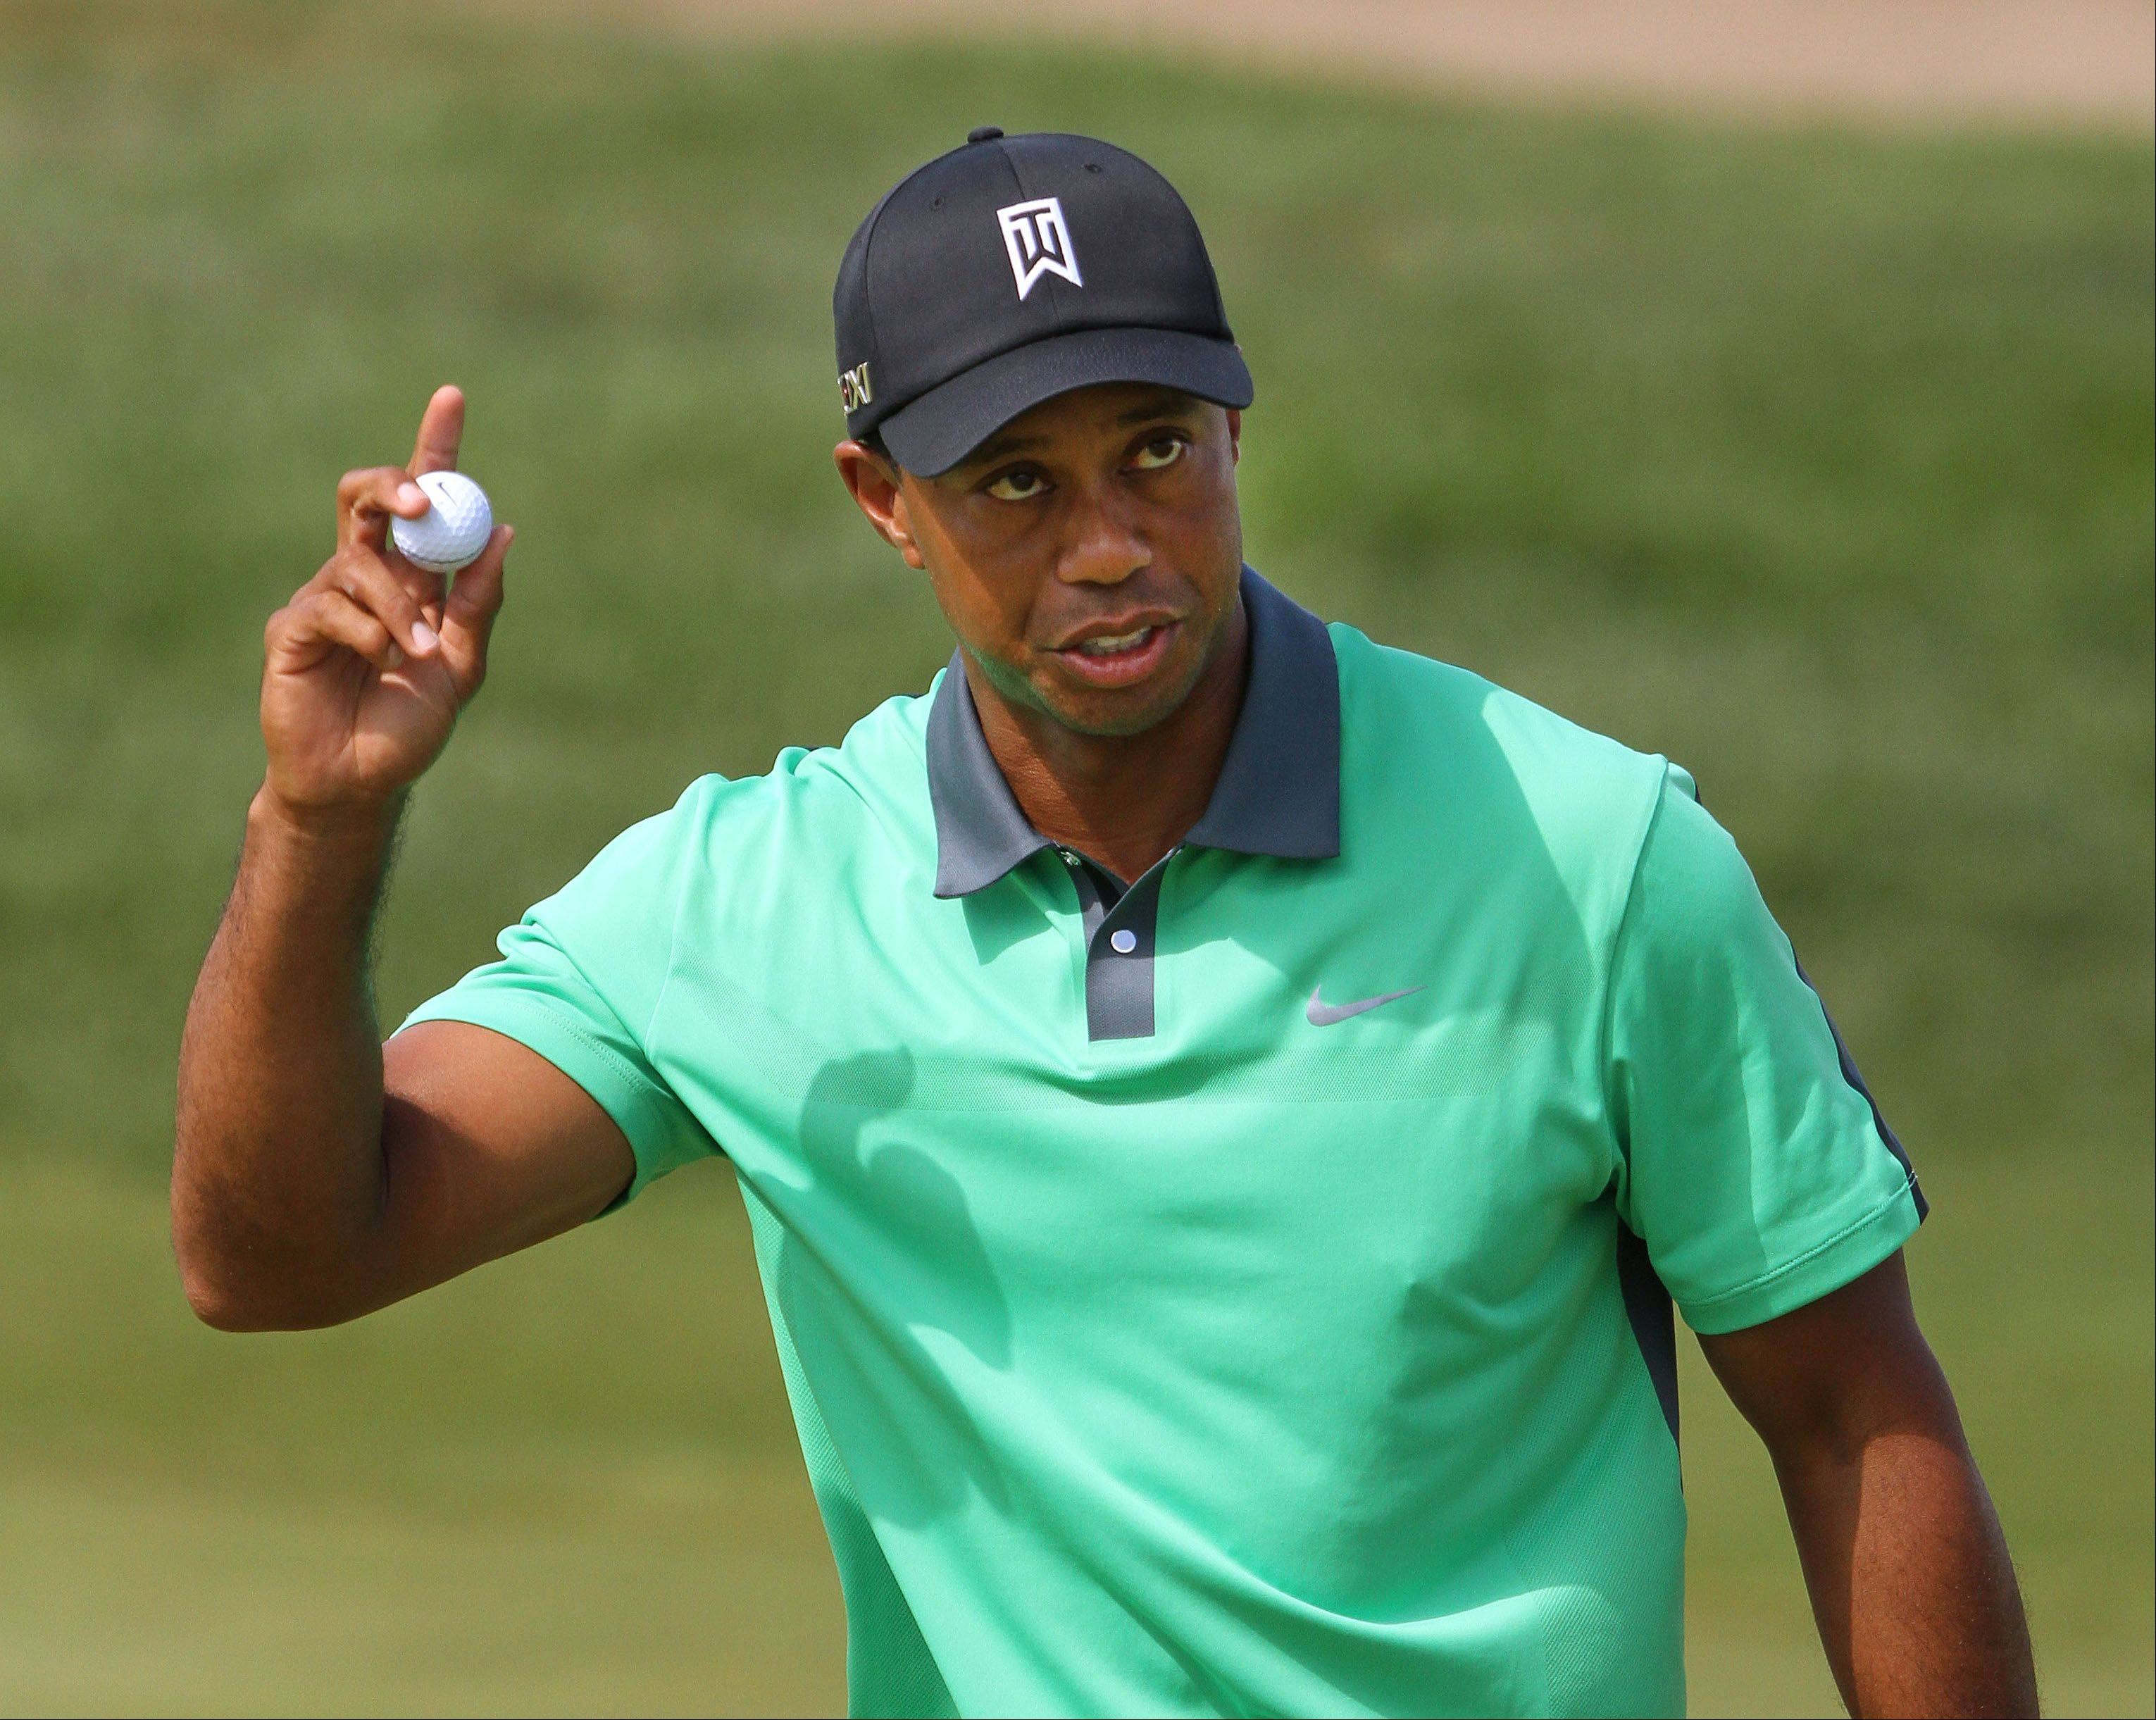 Tiger woods waves to the crowd after making a birdie putt on the 17th hole.